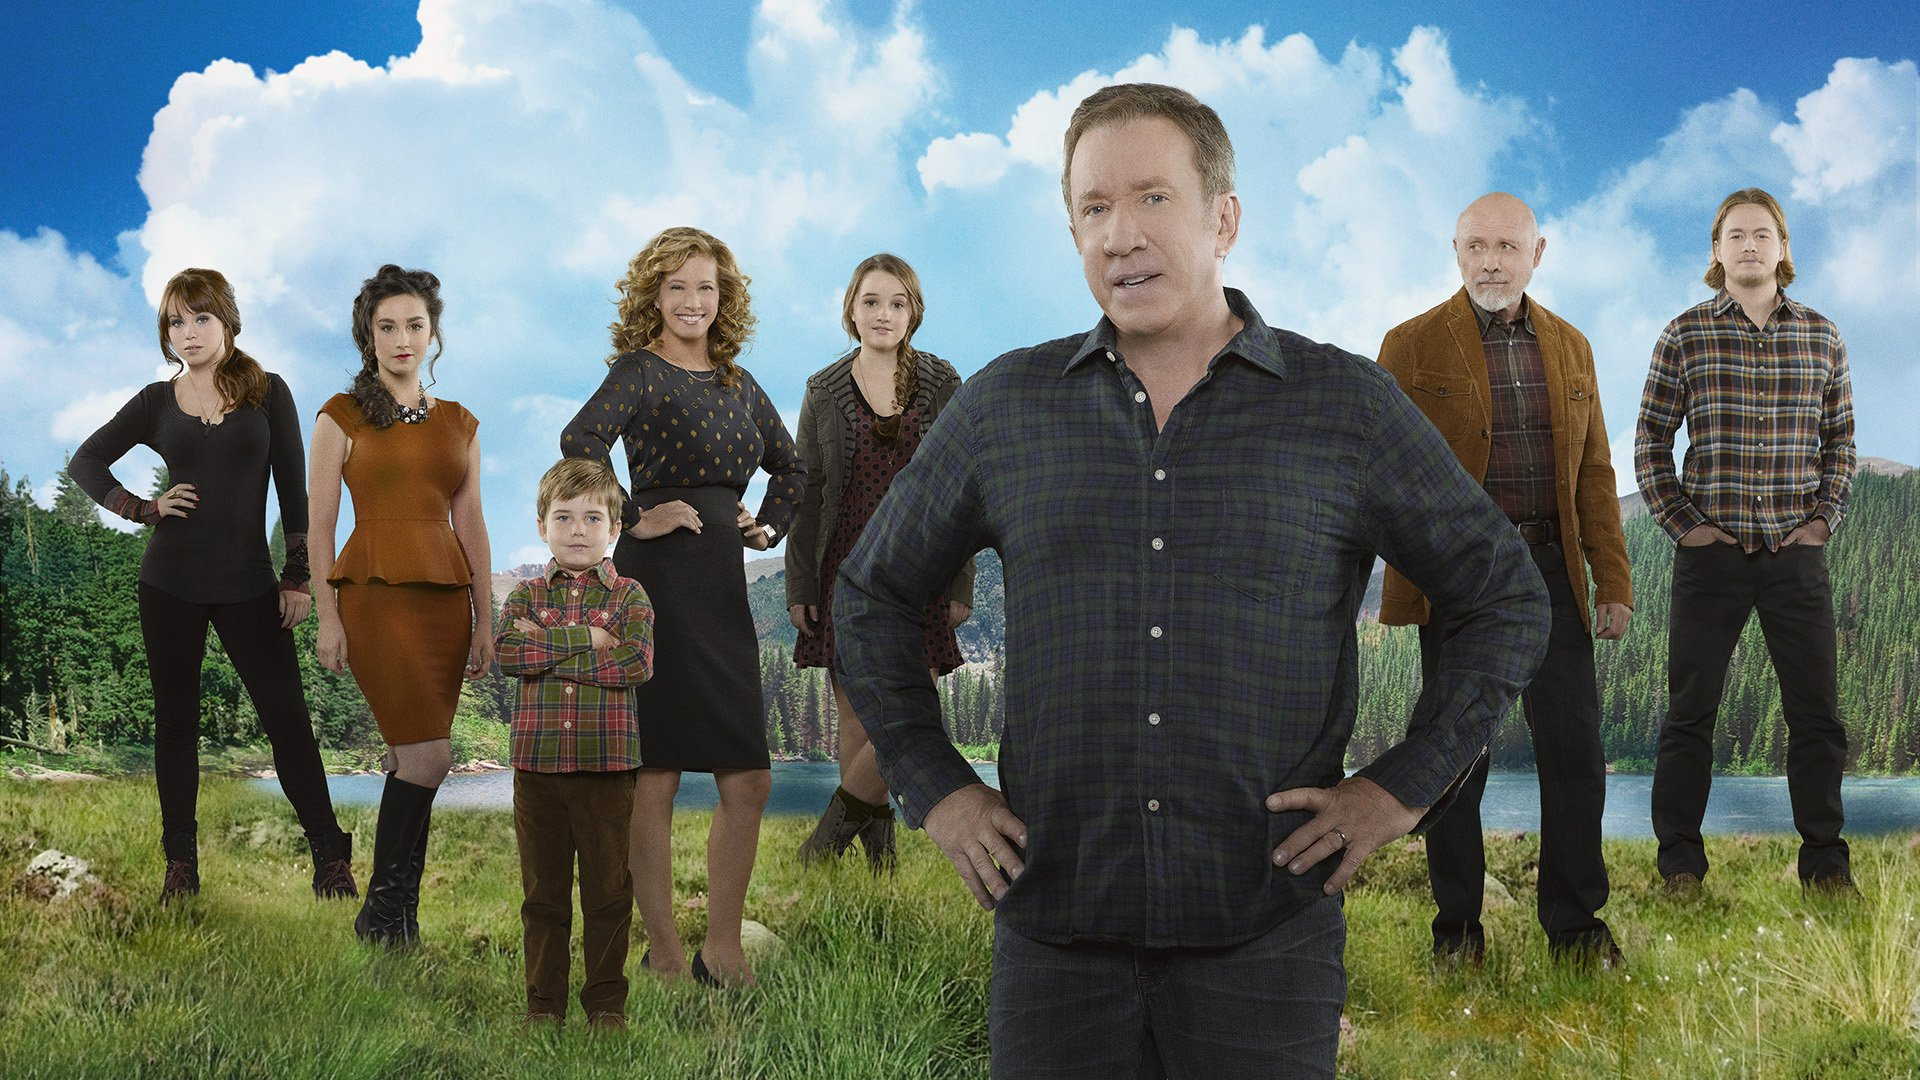 Last Man Standing Cast Image   ID 113522   Image Abyss 1920x1080